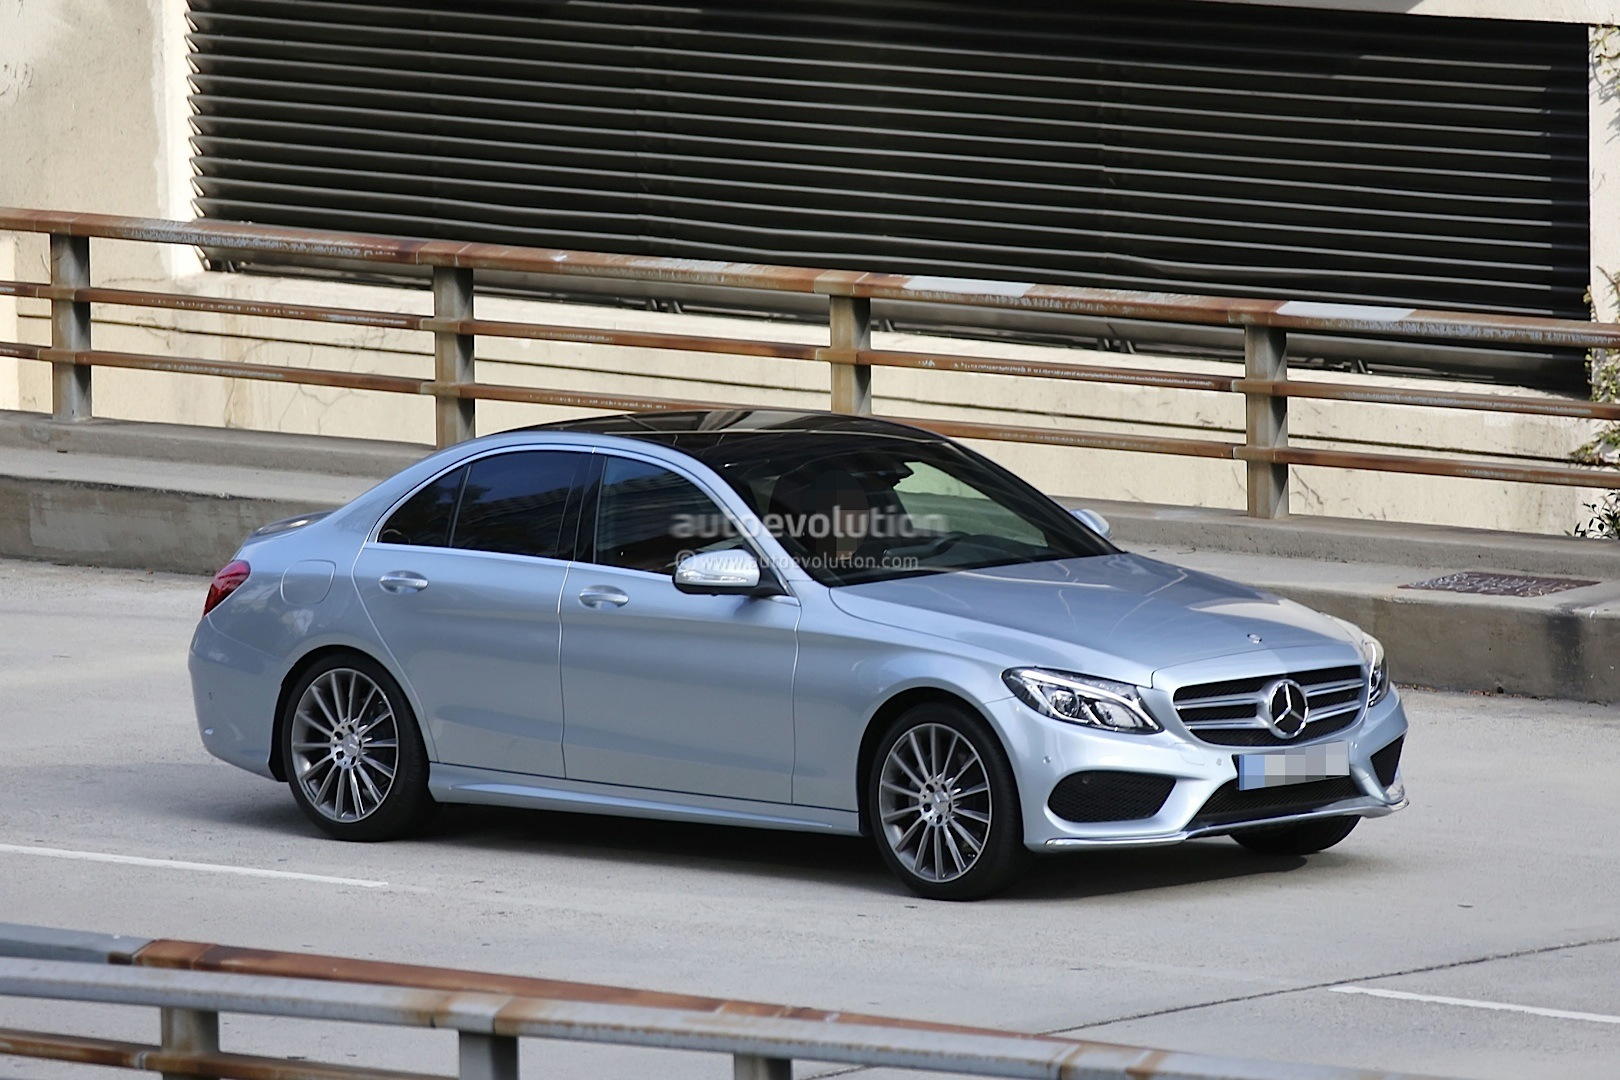 2015 mercedes benz c 220 bluetec w205 vs 2014 c 220 cdi w204 autoevolution. Black Bedroom Furniture Sets. Home Design Ideas